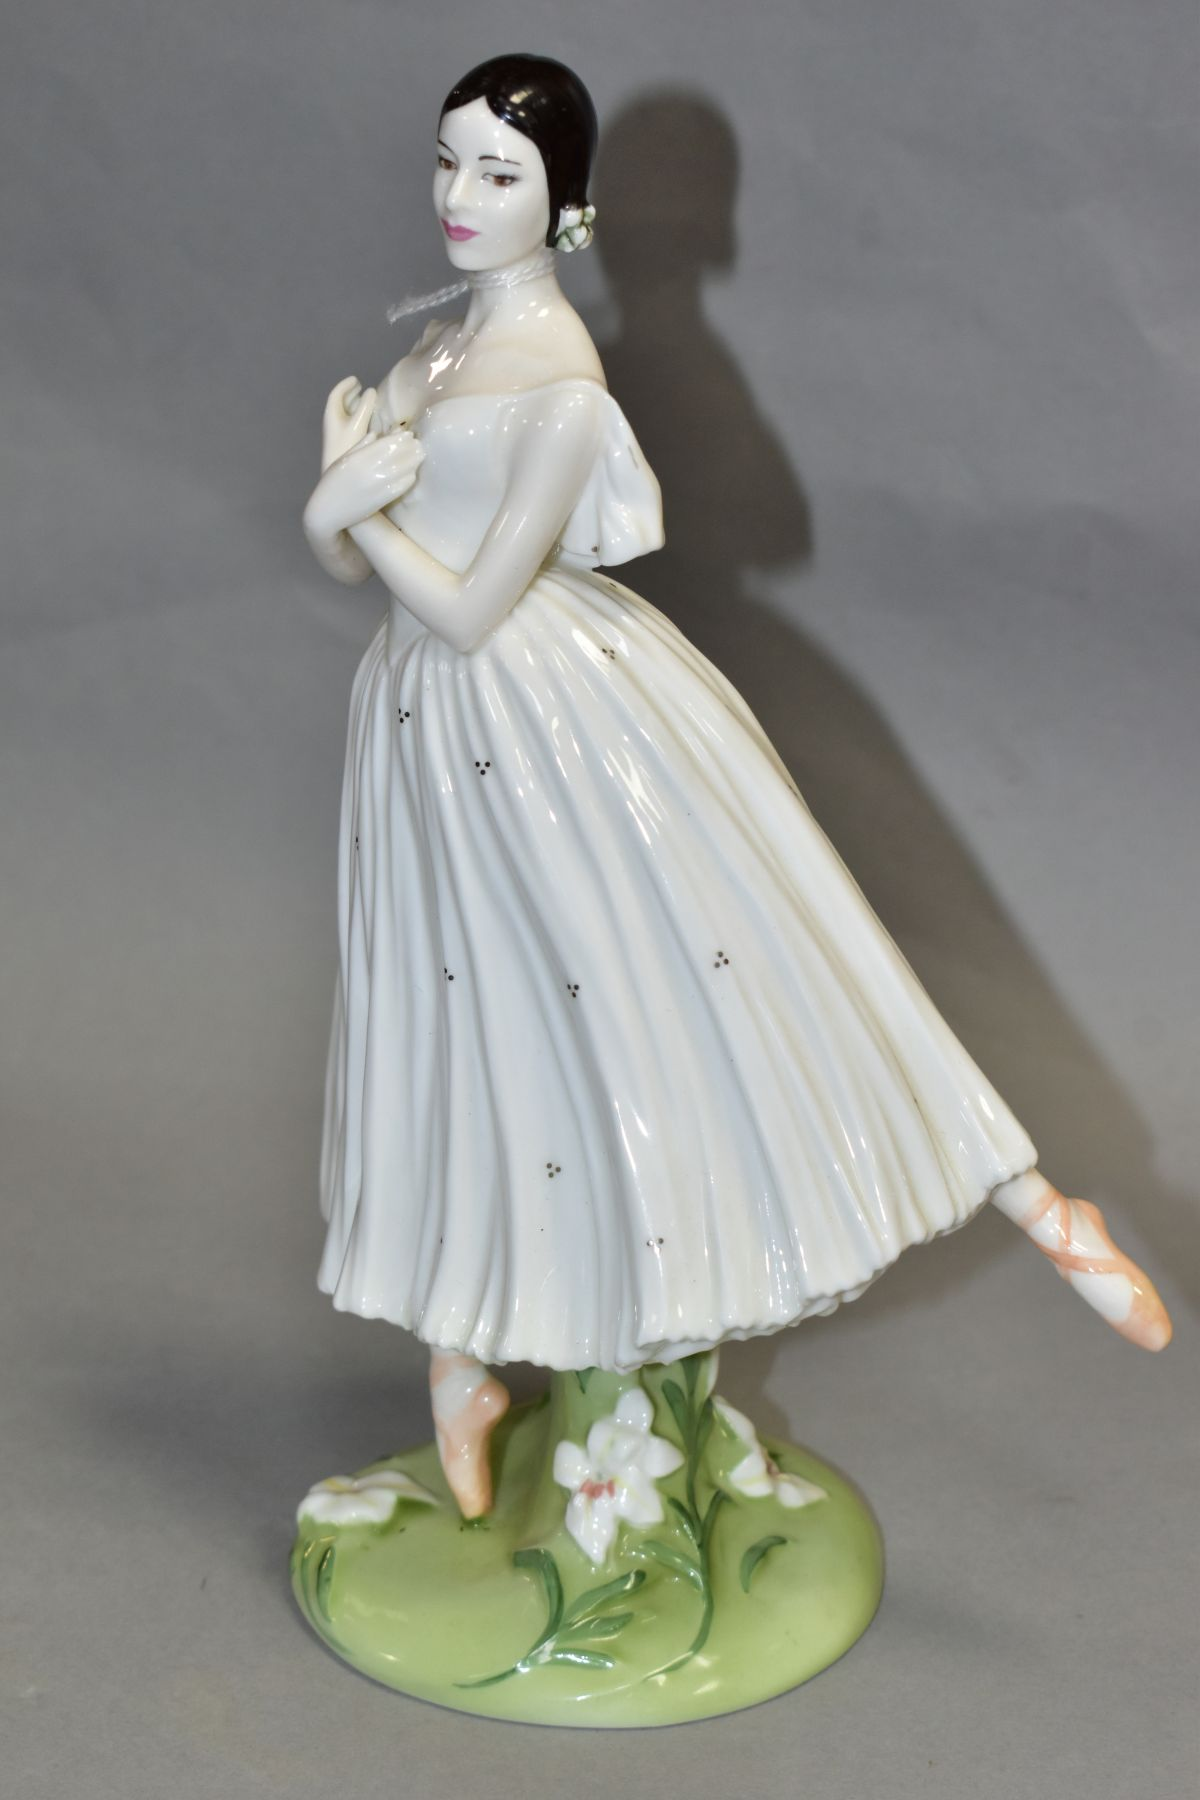 A LIMITED EDITION COALPORT FIGURE 'Dame Alicia Markova' from The Royal Academy of Dancing Collection - Image 2 of 4